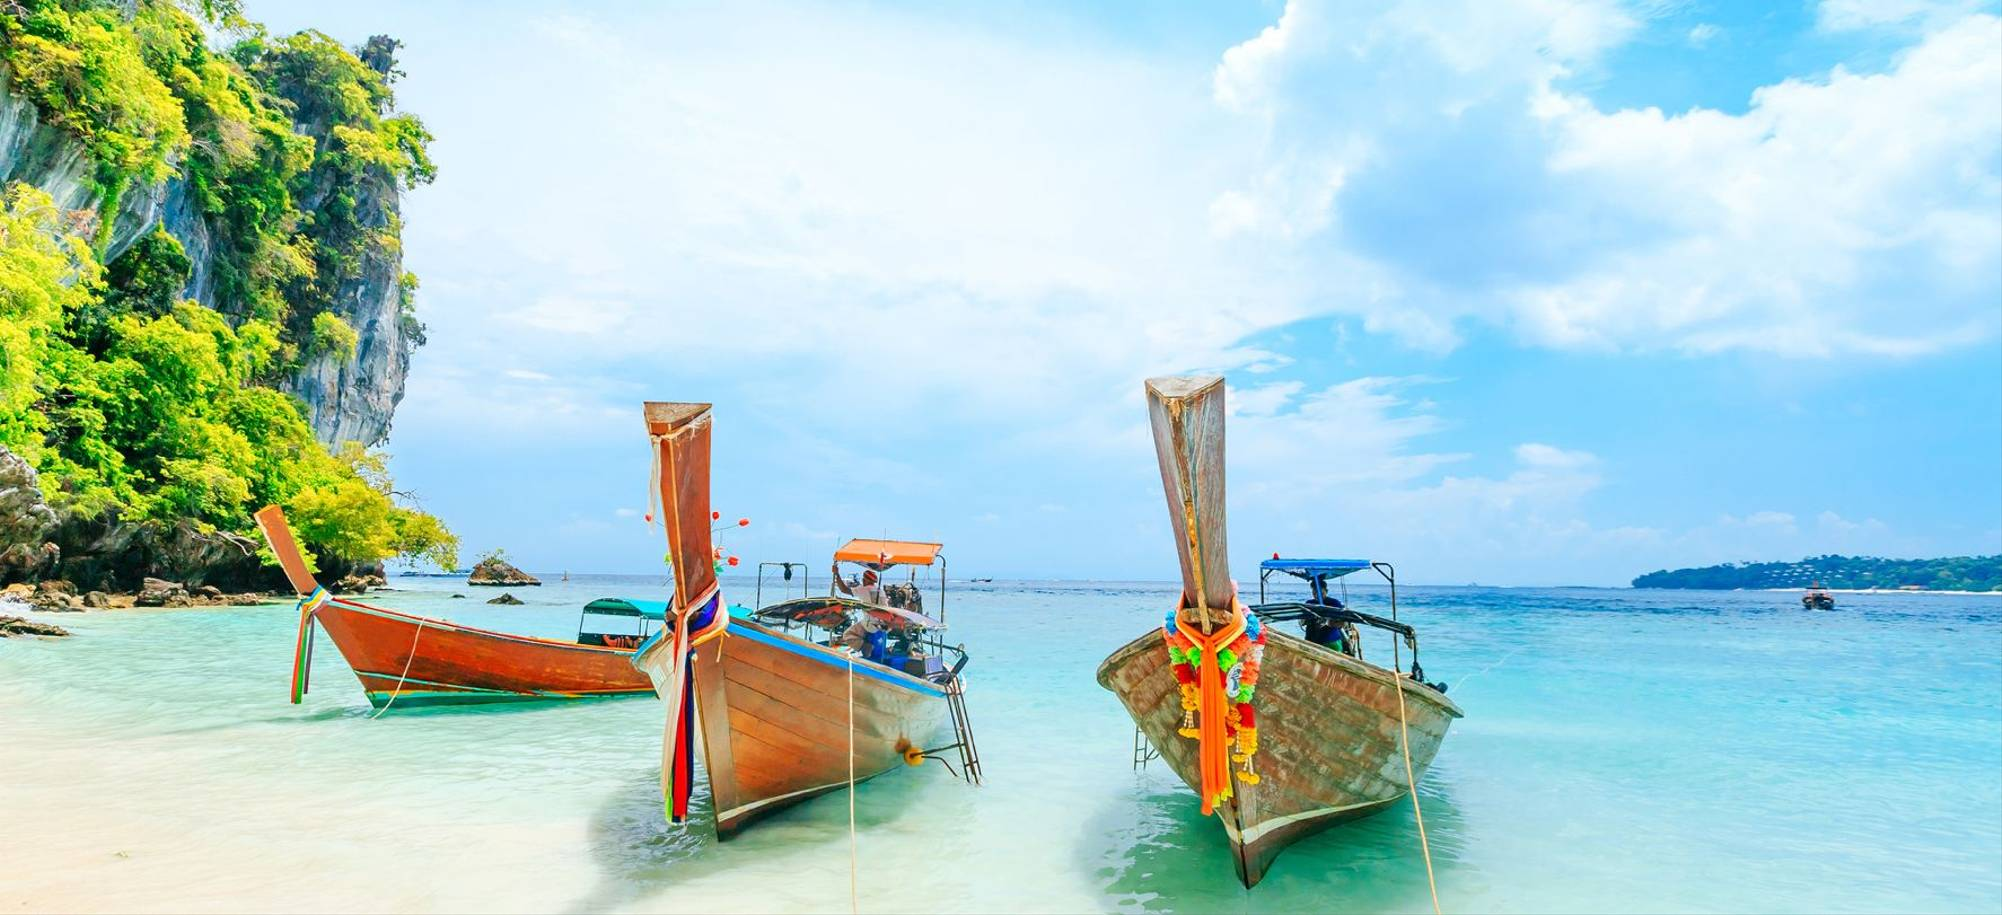 4 Day   Phuket, Thailand   Longtale Boat On The Whibeach   Itinerary Desktop